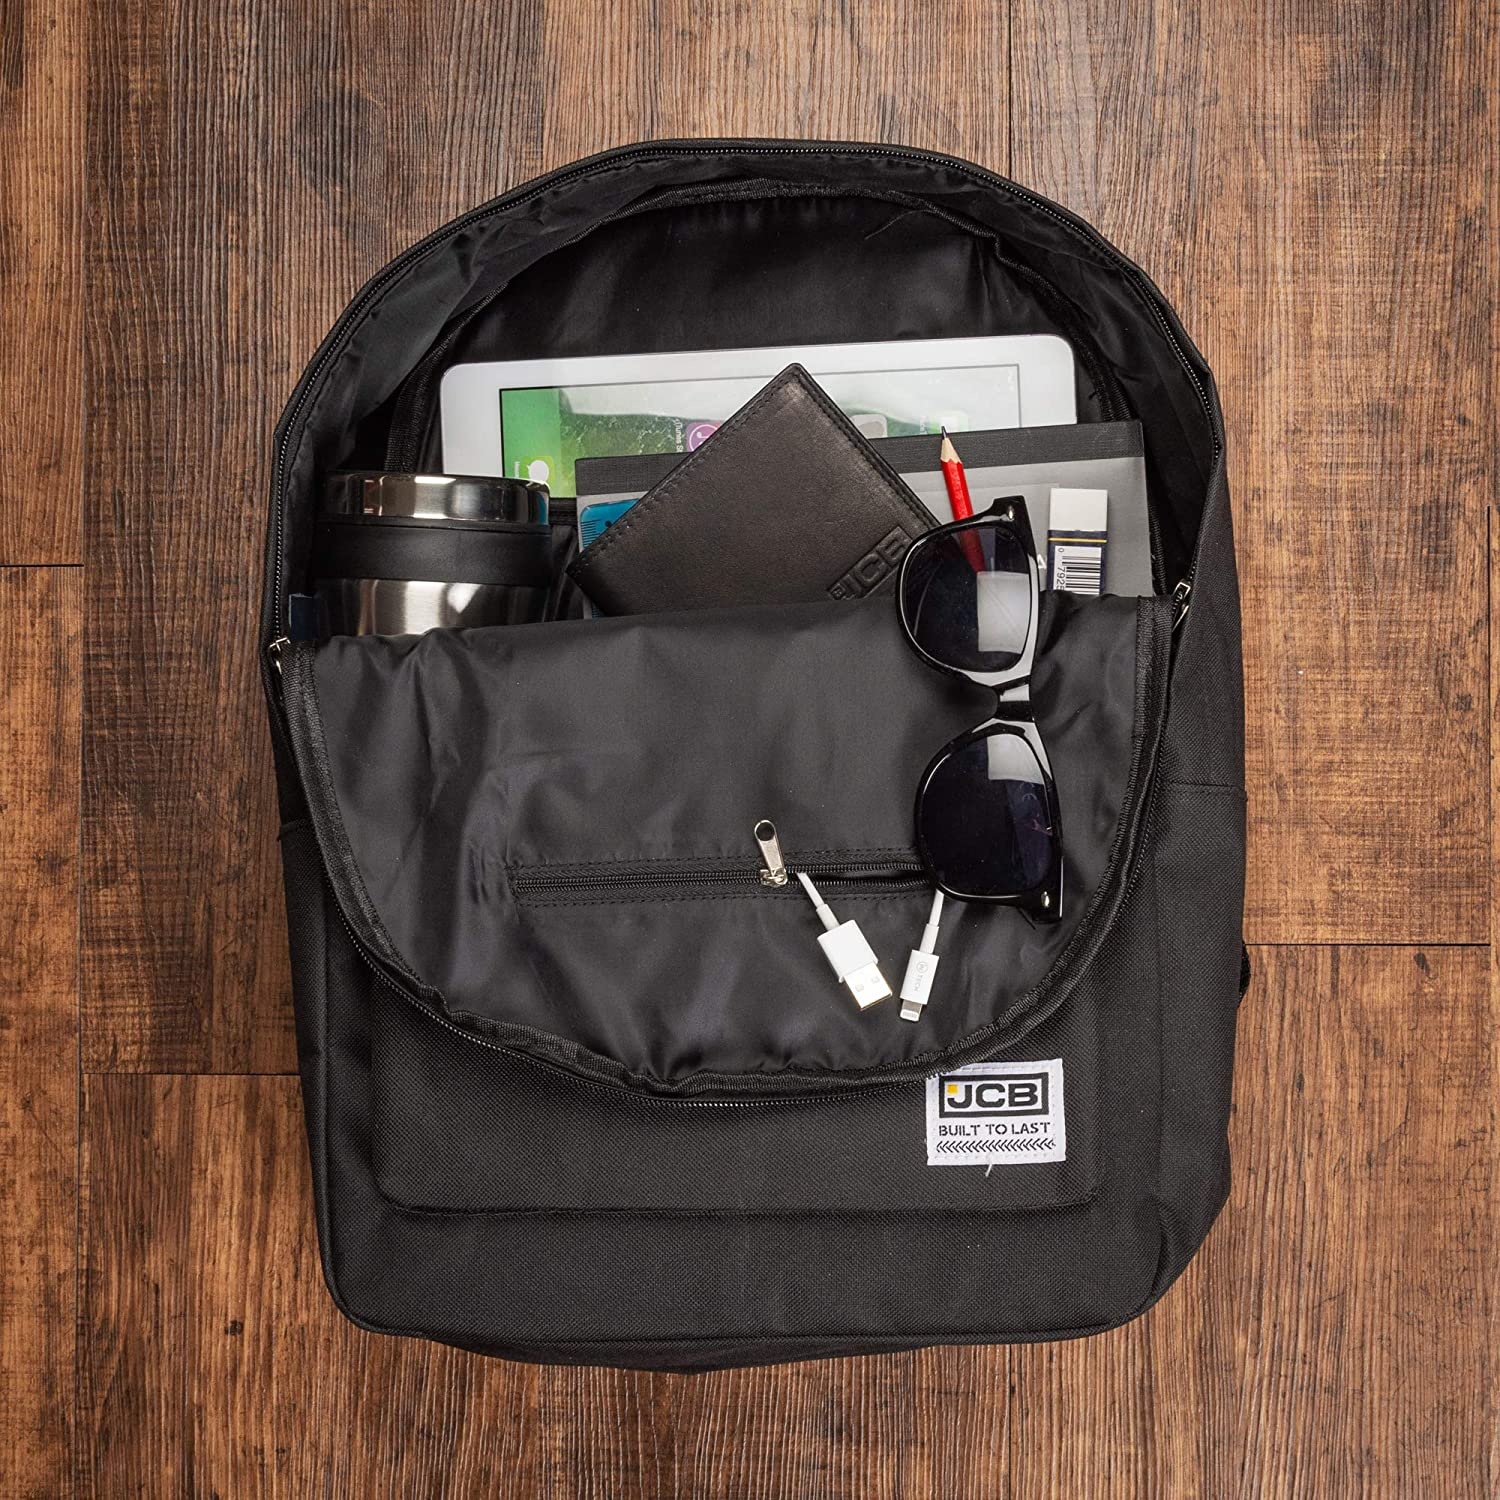 840bac15e219 JCB Backpack for School - Backpack For Men and Women (Unisex) - Great To Be  Used As A Laptop Backpack